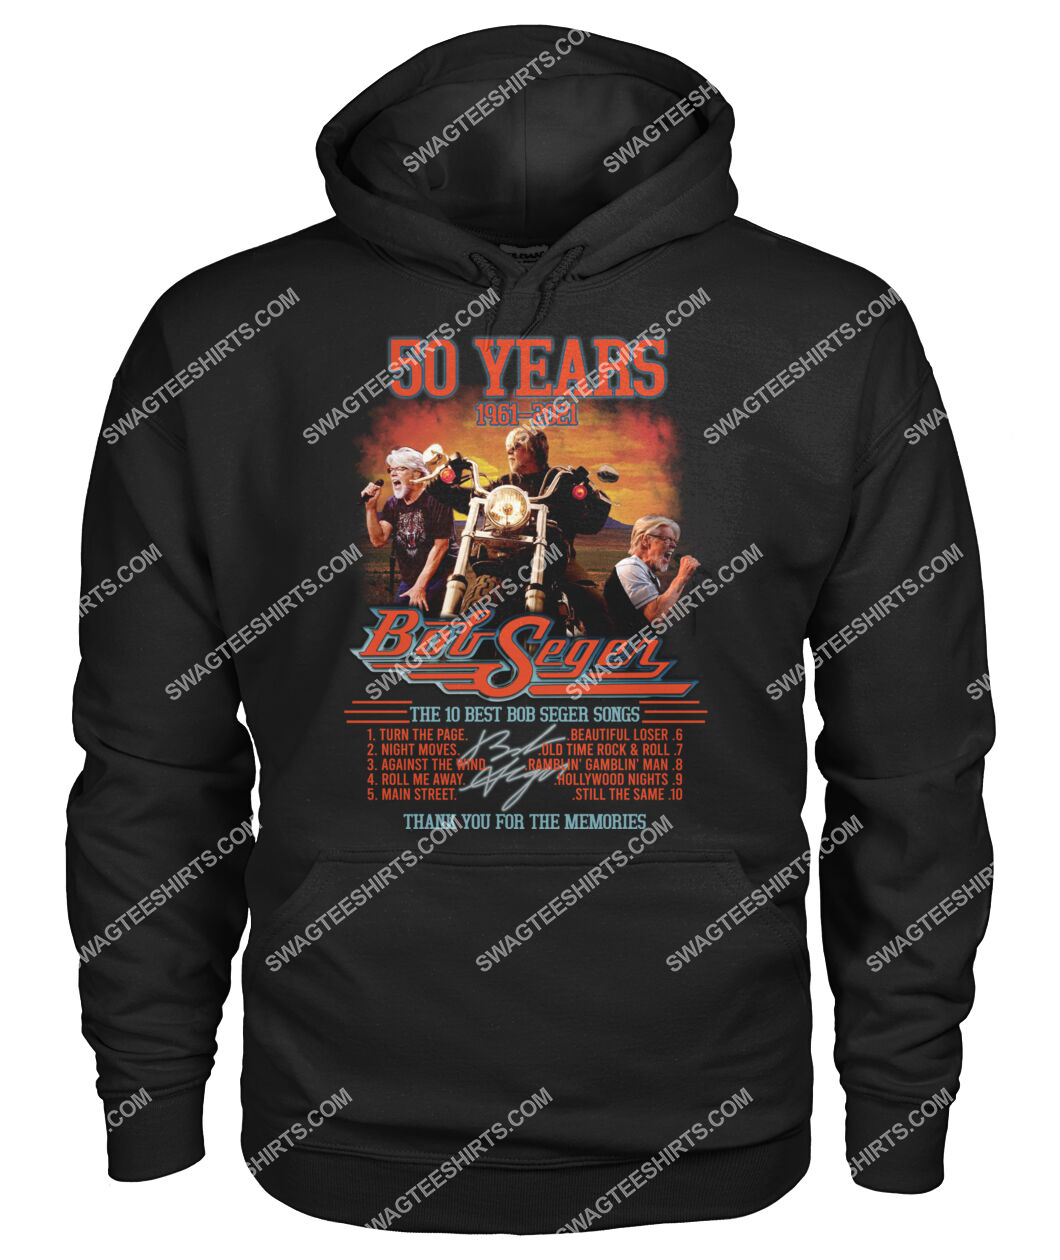 bob saget 50 years thank you for memories signature hoodie 1